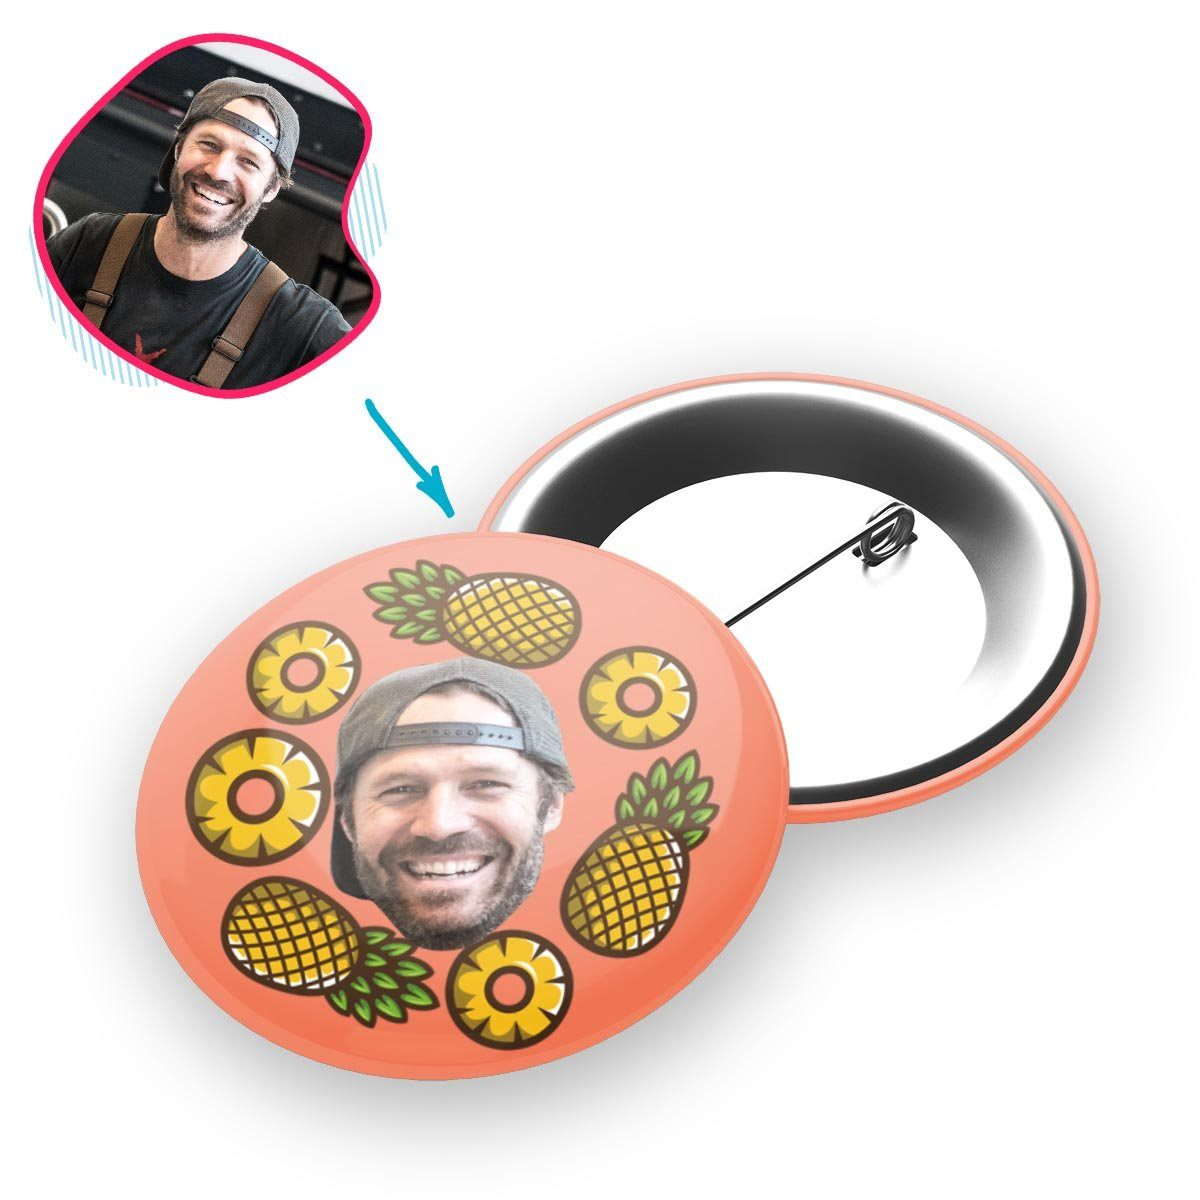 salmon Fruits pin personalized with photo of face printed on it